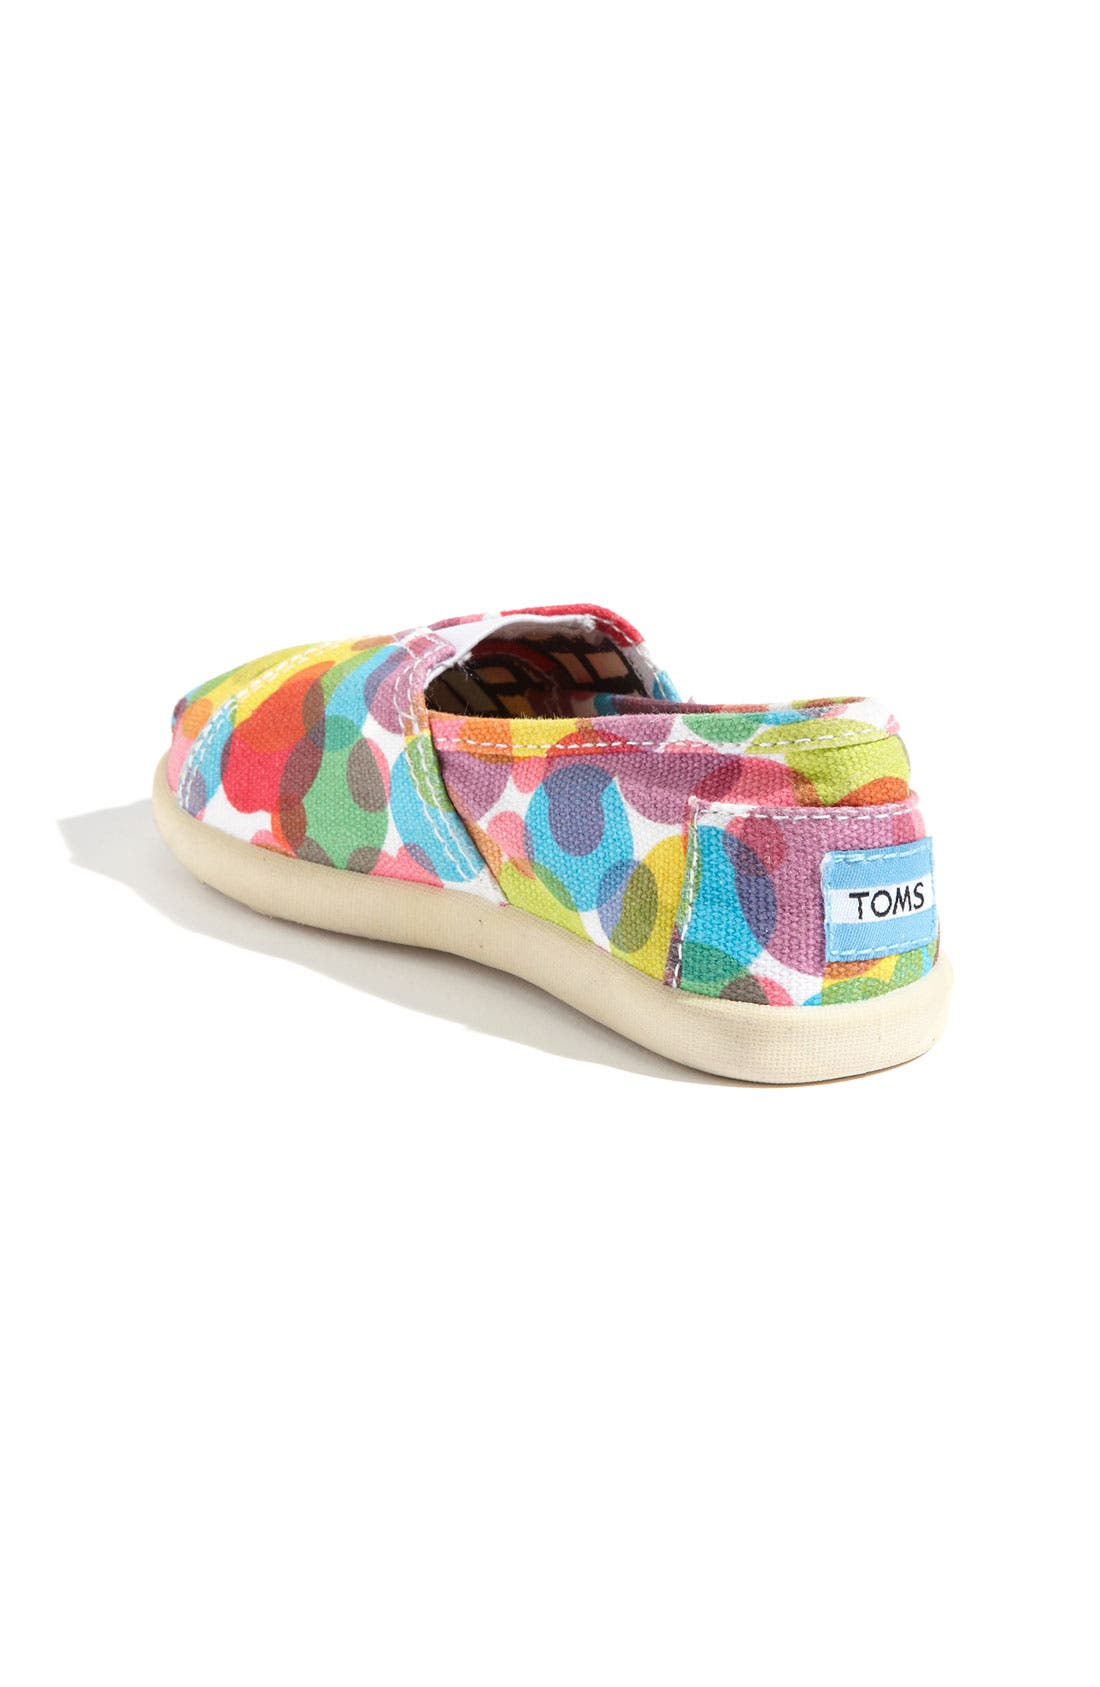 Alternate Image 2  - TOMS 'Classic Tiny - Clea' Slip-On (Baby, Walker & Toddler)